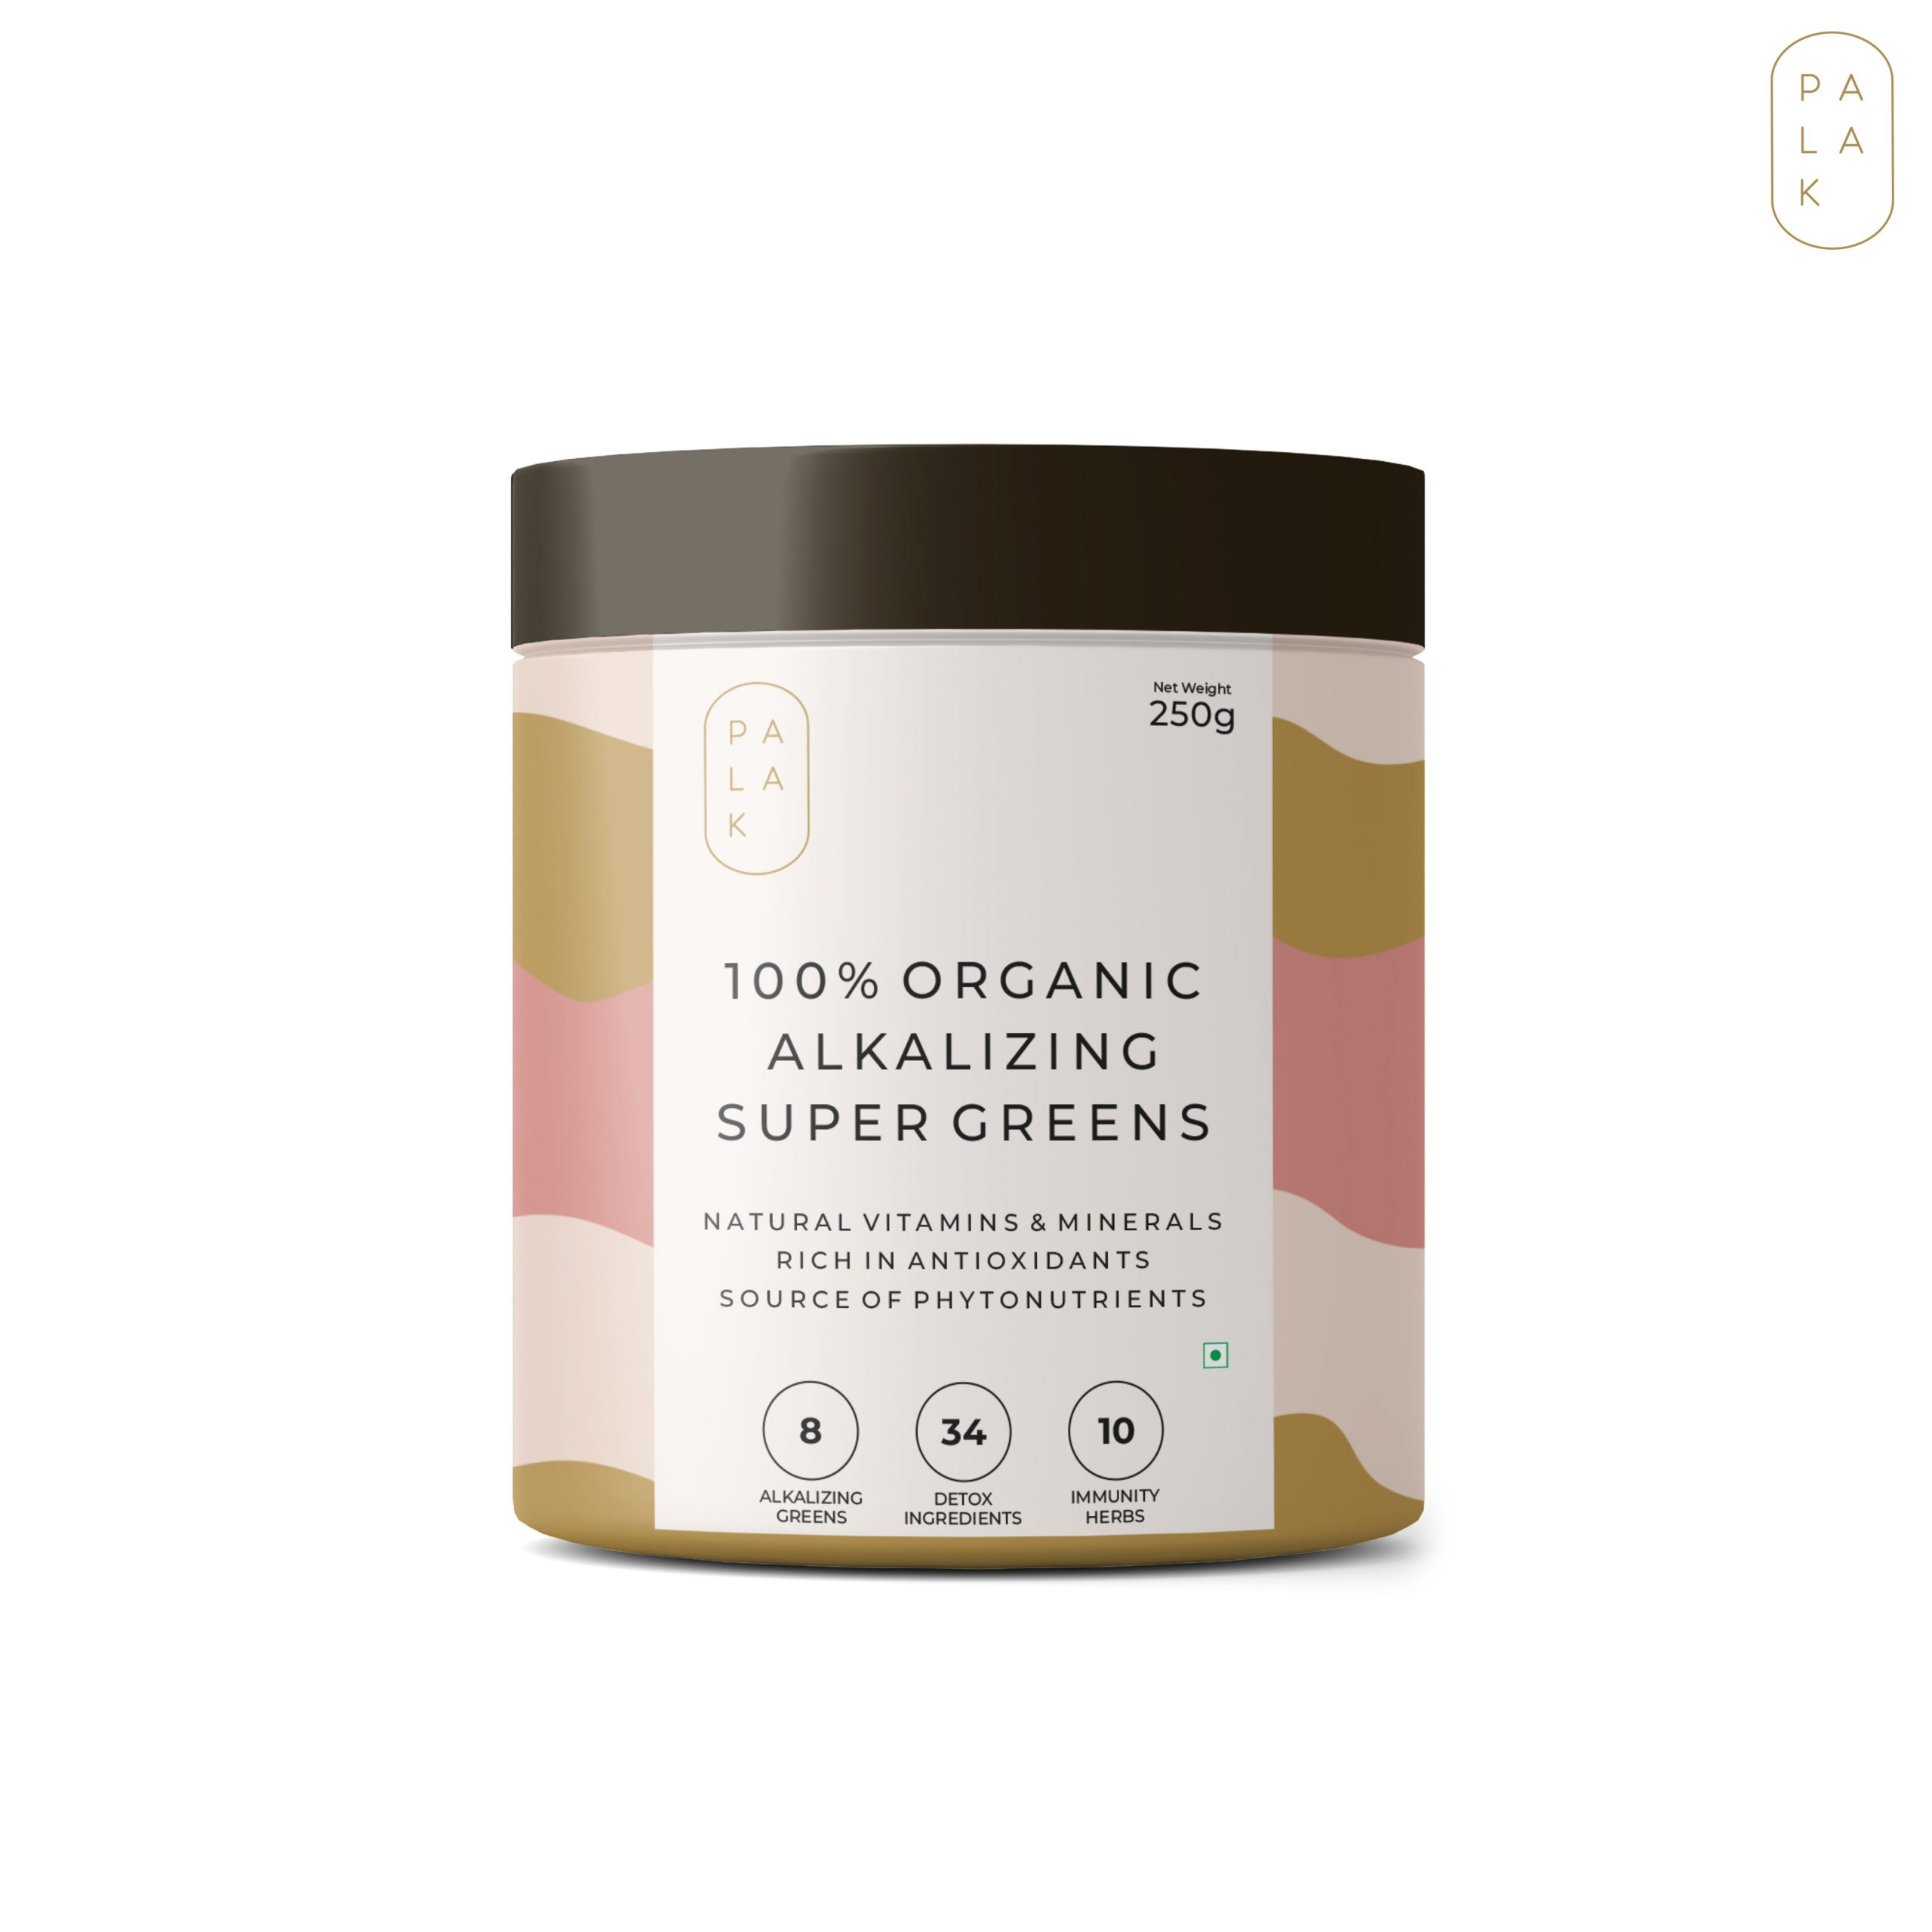 Palak Notes 100% Organic Alkalizing Super Greens